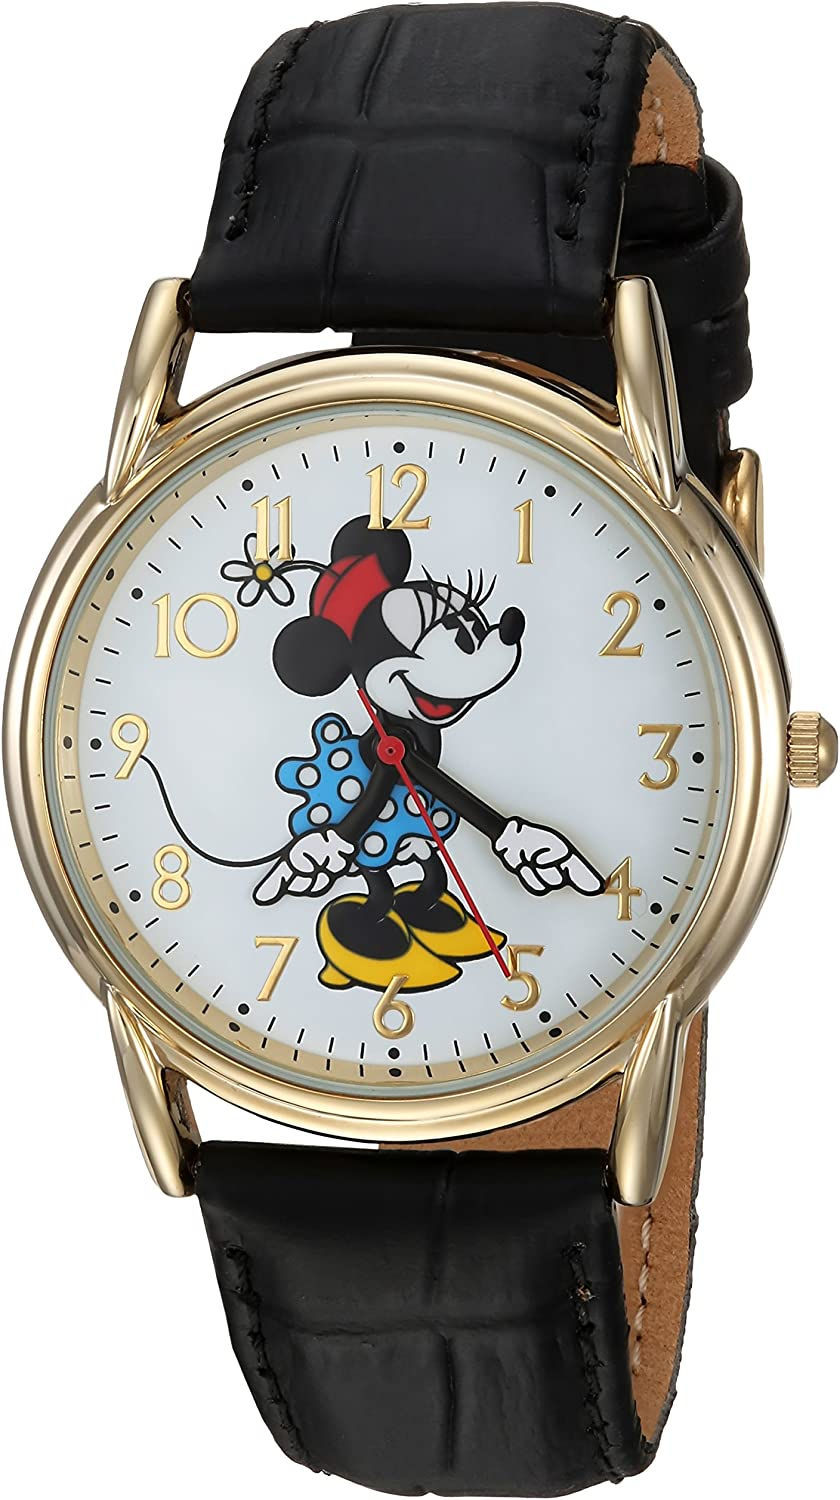 DISNEY Women's Minnie Mouse Analog-Quartz Watch with Leather-Synthetic Strap, Black, 14 (Model: WDS000410)